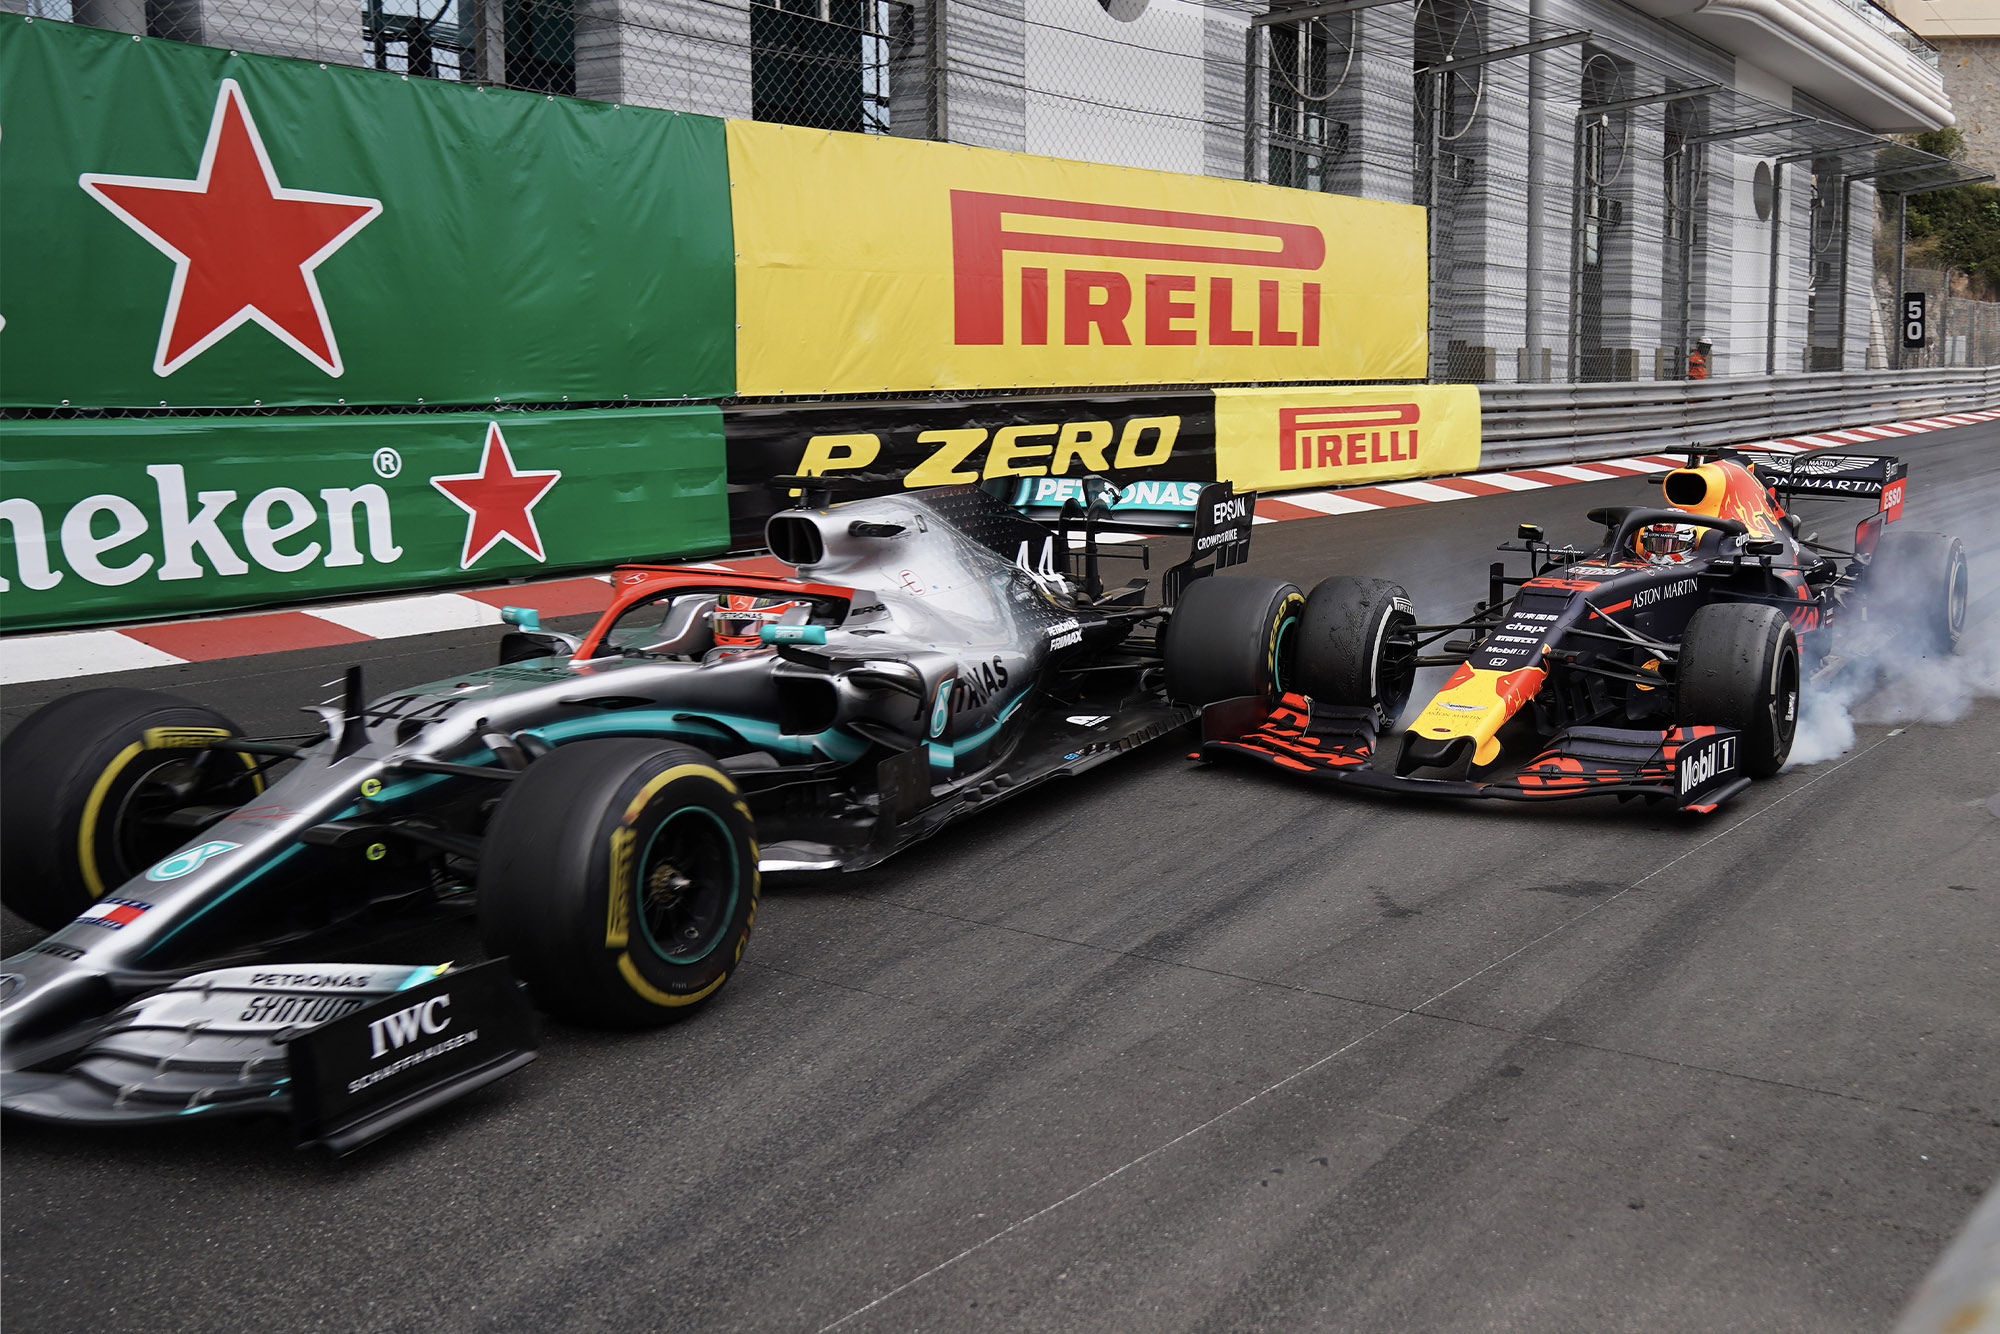 Lewis Hamilton and Max Verstappen make contact at the Nouvelle Chicane during the 2019 Monaco Grand Prix